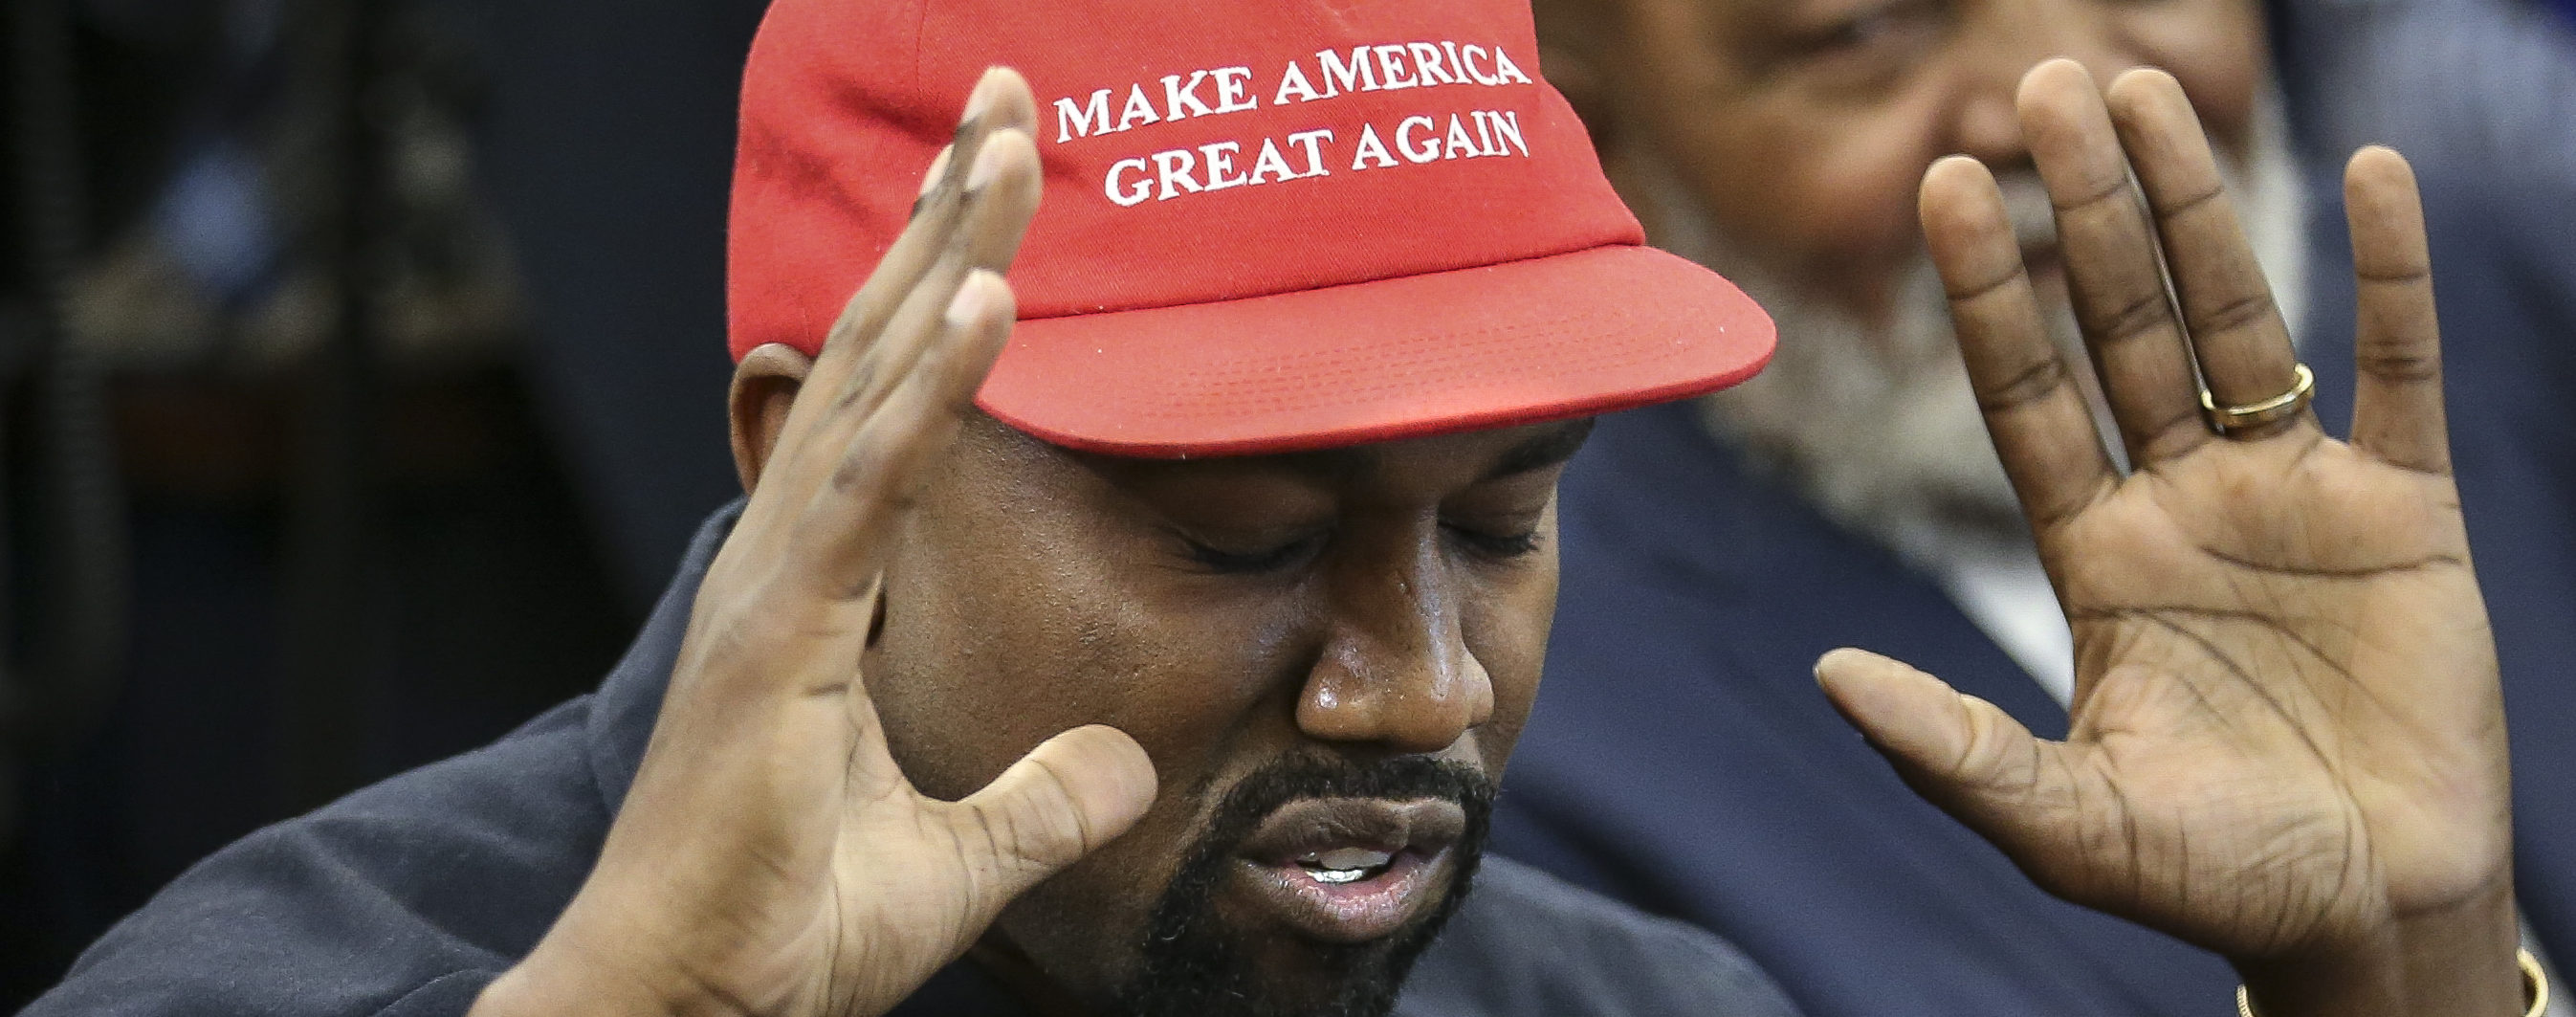 WASHINGTON, DC - OCTOBER 11: (AFP OUT) Rapper Kanye West speaks during a meeting with U.S. President Donald Trump in the Oval office of the White House on October 11, 2018 in Washington, DC. (Photo by Oliver Contreras - Pool/Getty Images)